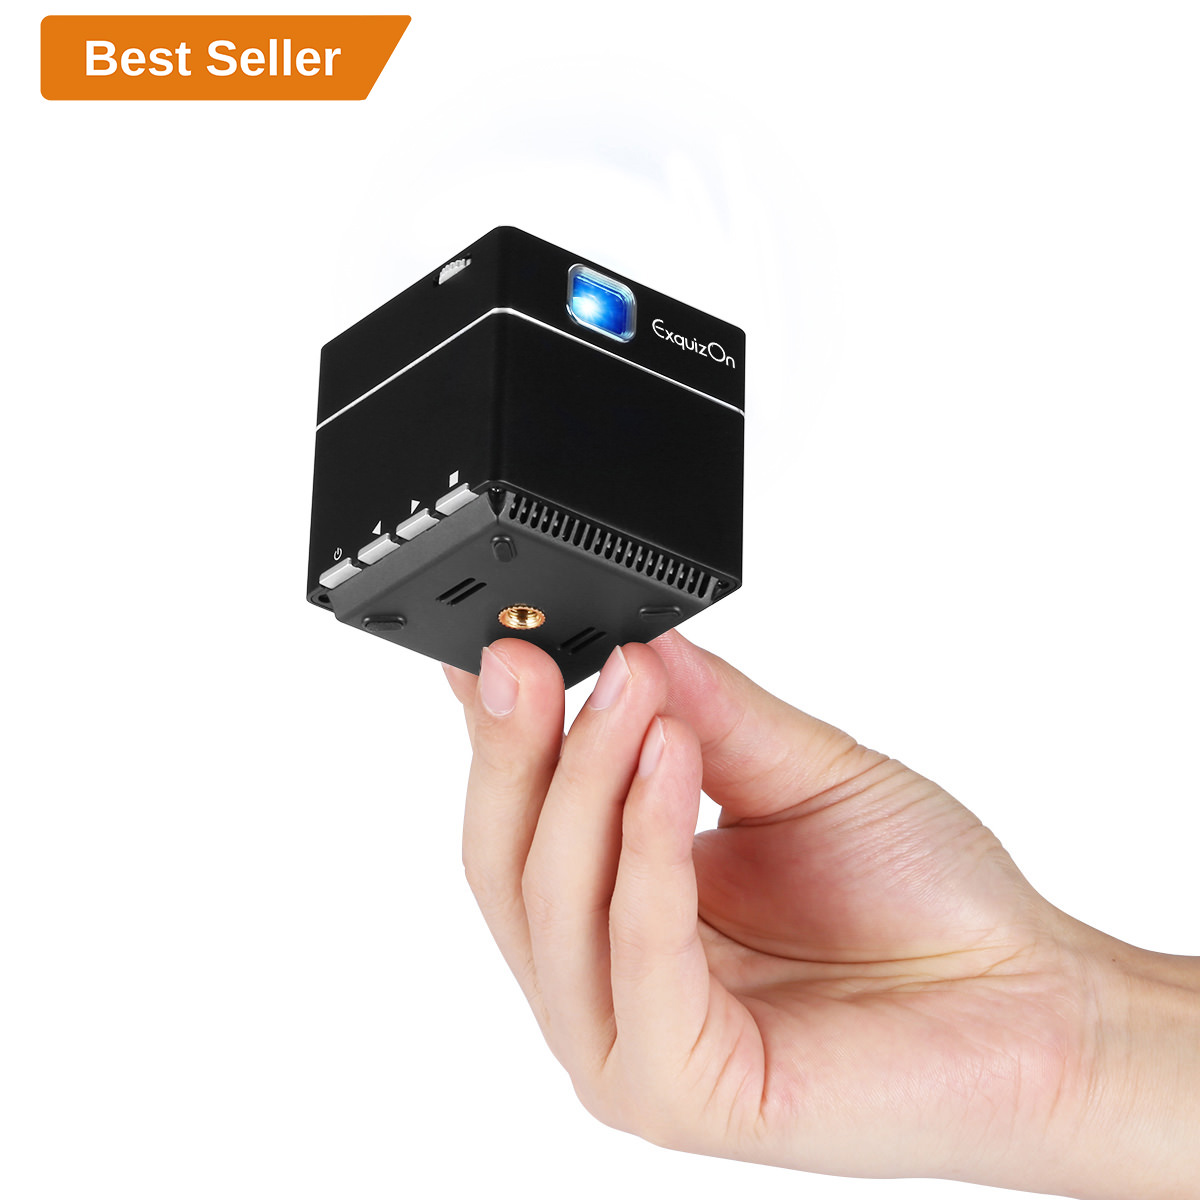 Exquizon S6 Mini Cube DLP Pocket Projector S6 1080P Supported HD Pico Wireless Wifi Built-in Battery Smart Video Projector Compatible With HDMI Devices Micro SD Card For Home And Ourdoor